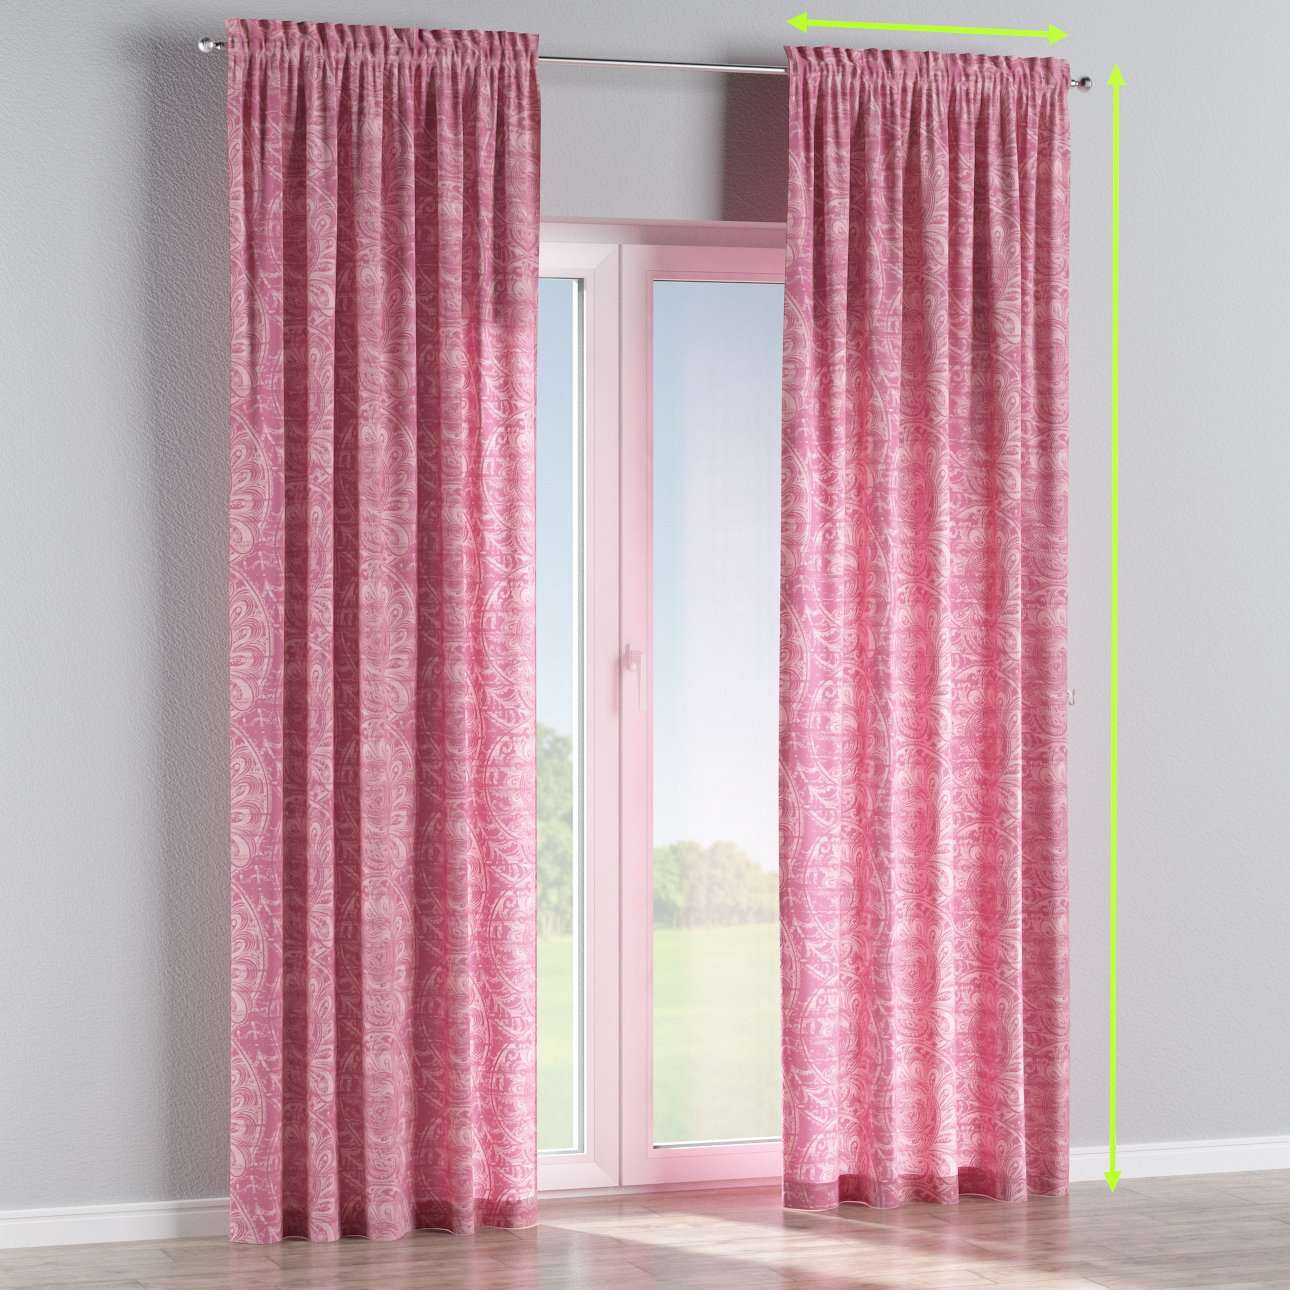 Slot and frill lined curtains in collection Mirella, fabric: 143-07